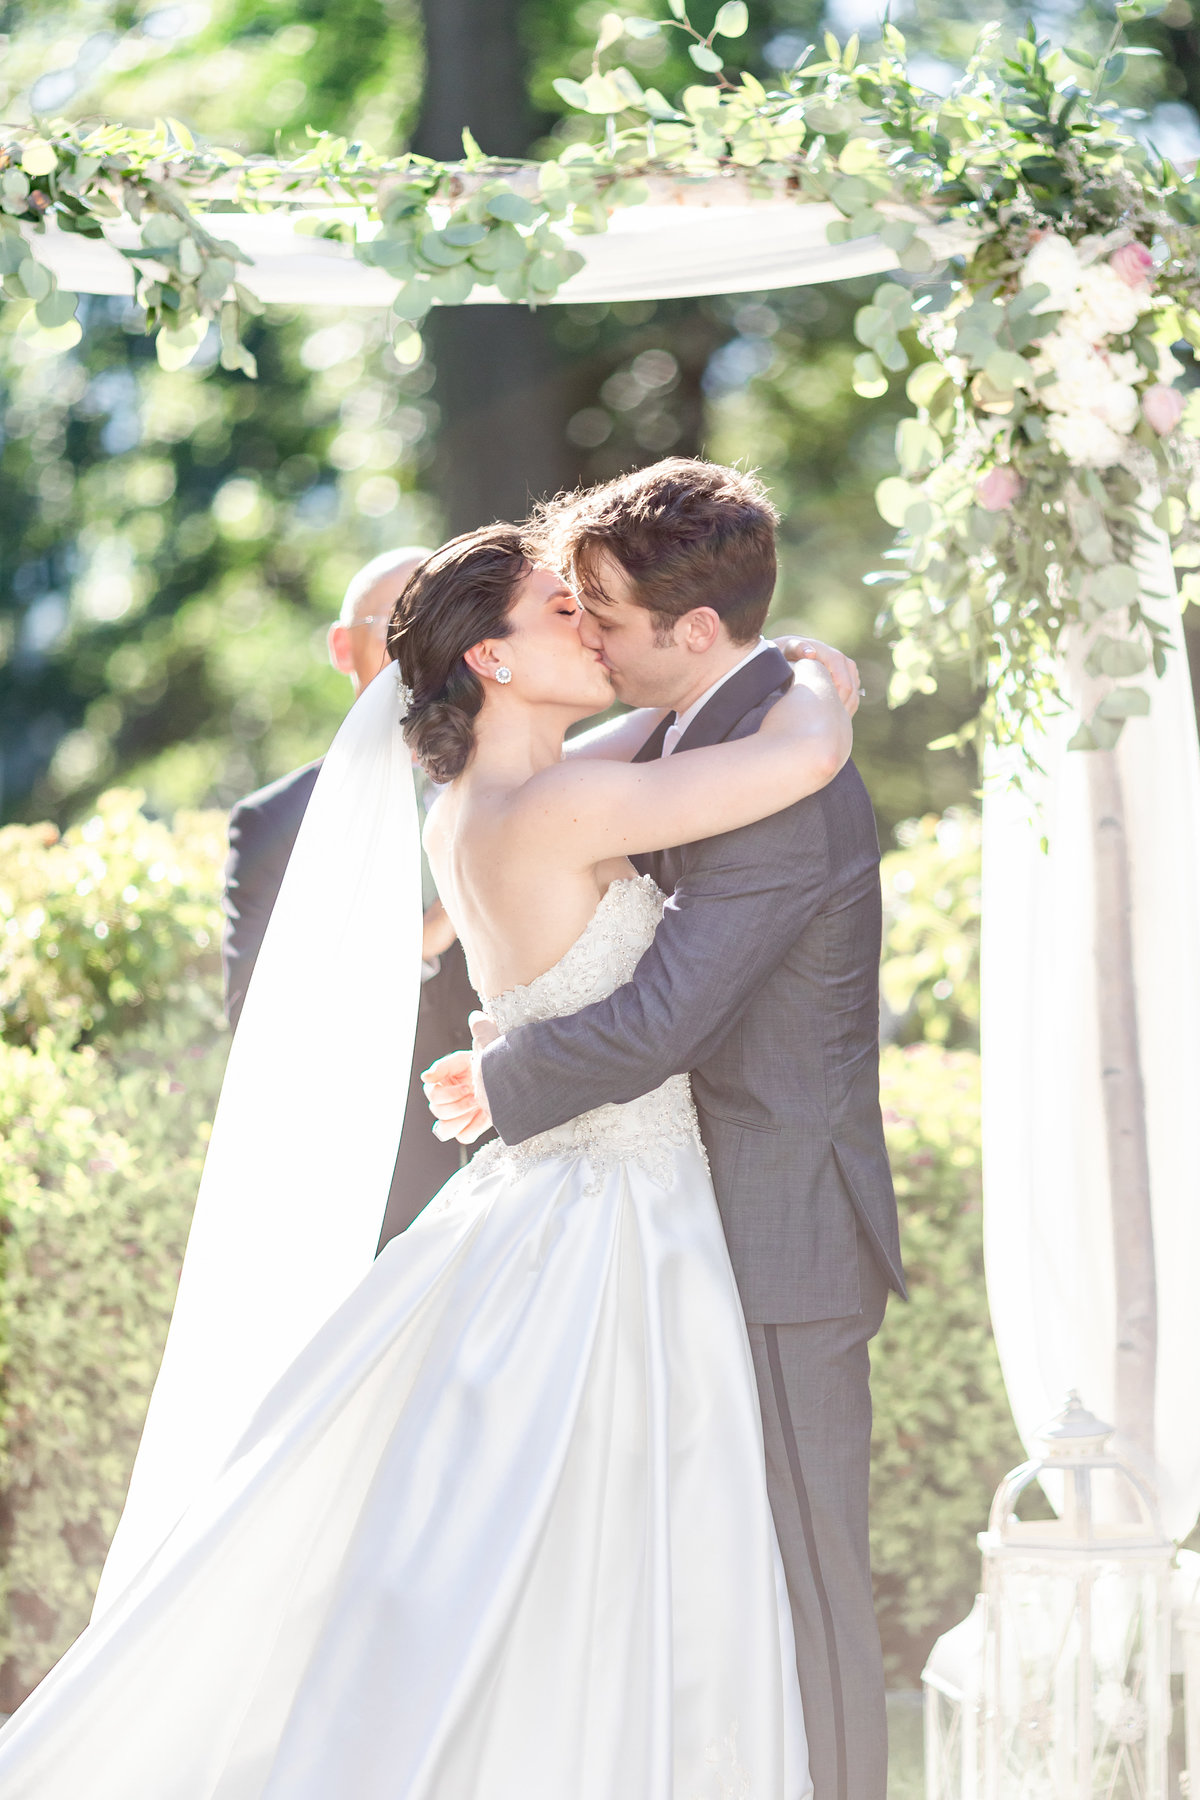 Briarcliff Manor wedding ceremony photo of bride and groom kissing